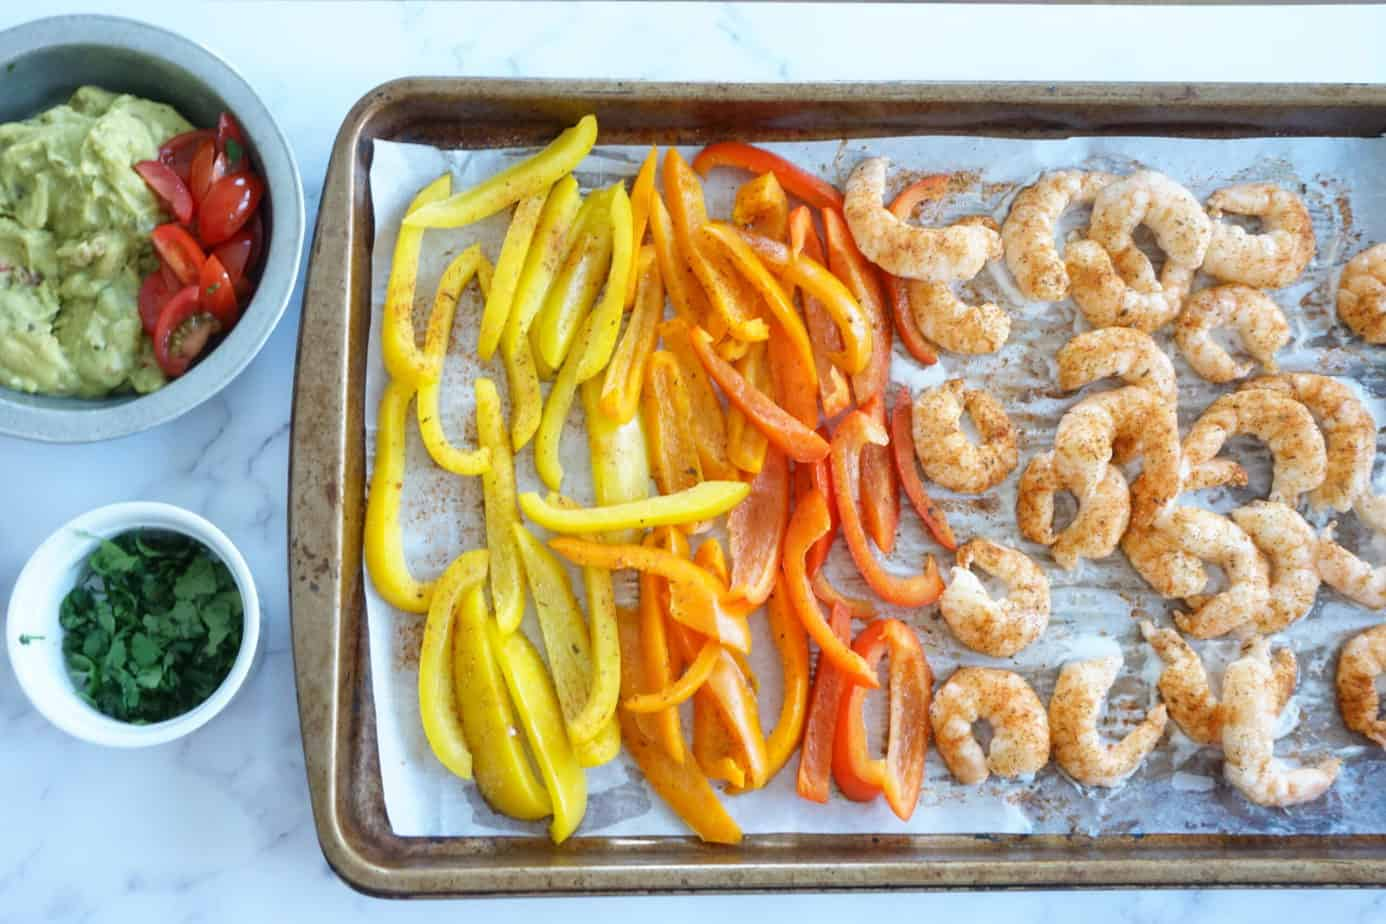 shrimp fajitas with seasoning, guacamole and cilantro